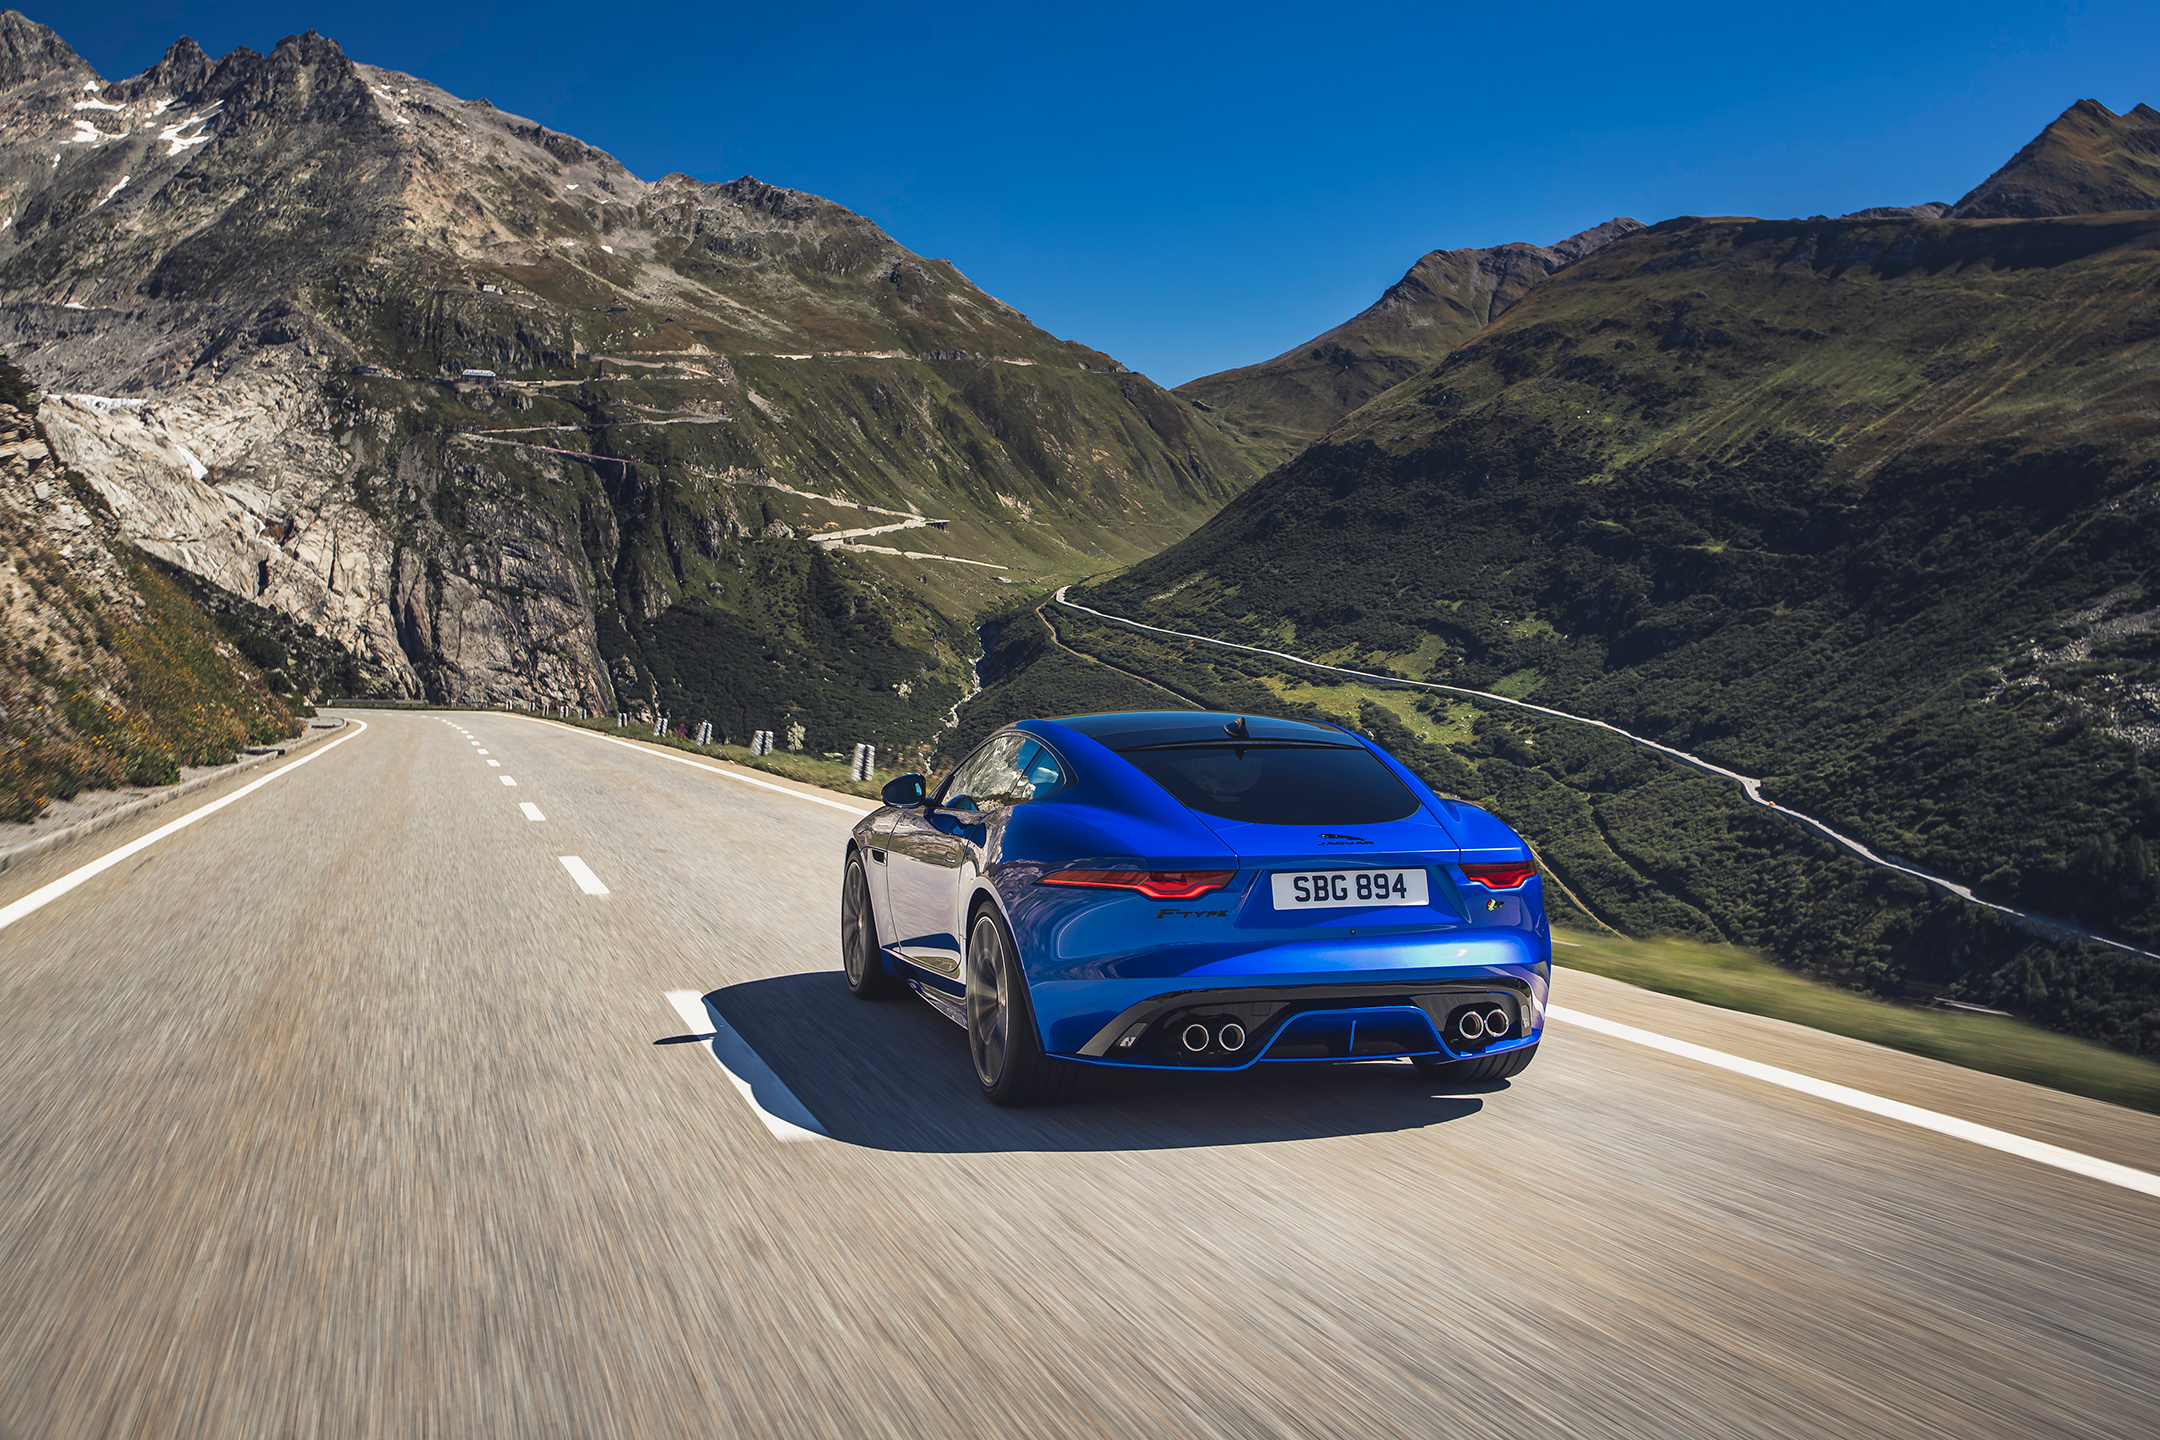 Jaguar F-TYPE - 2019 - rear side-face / profil arrière - on road / sur route